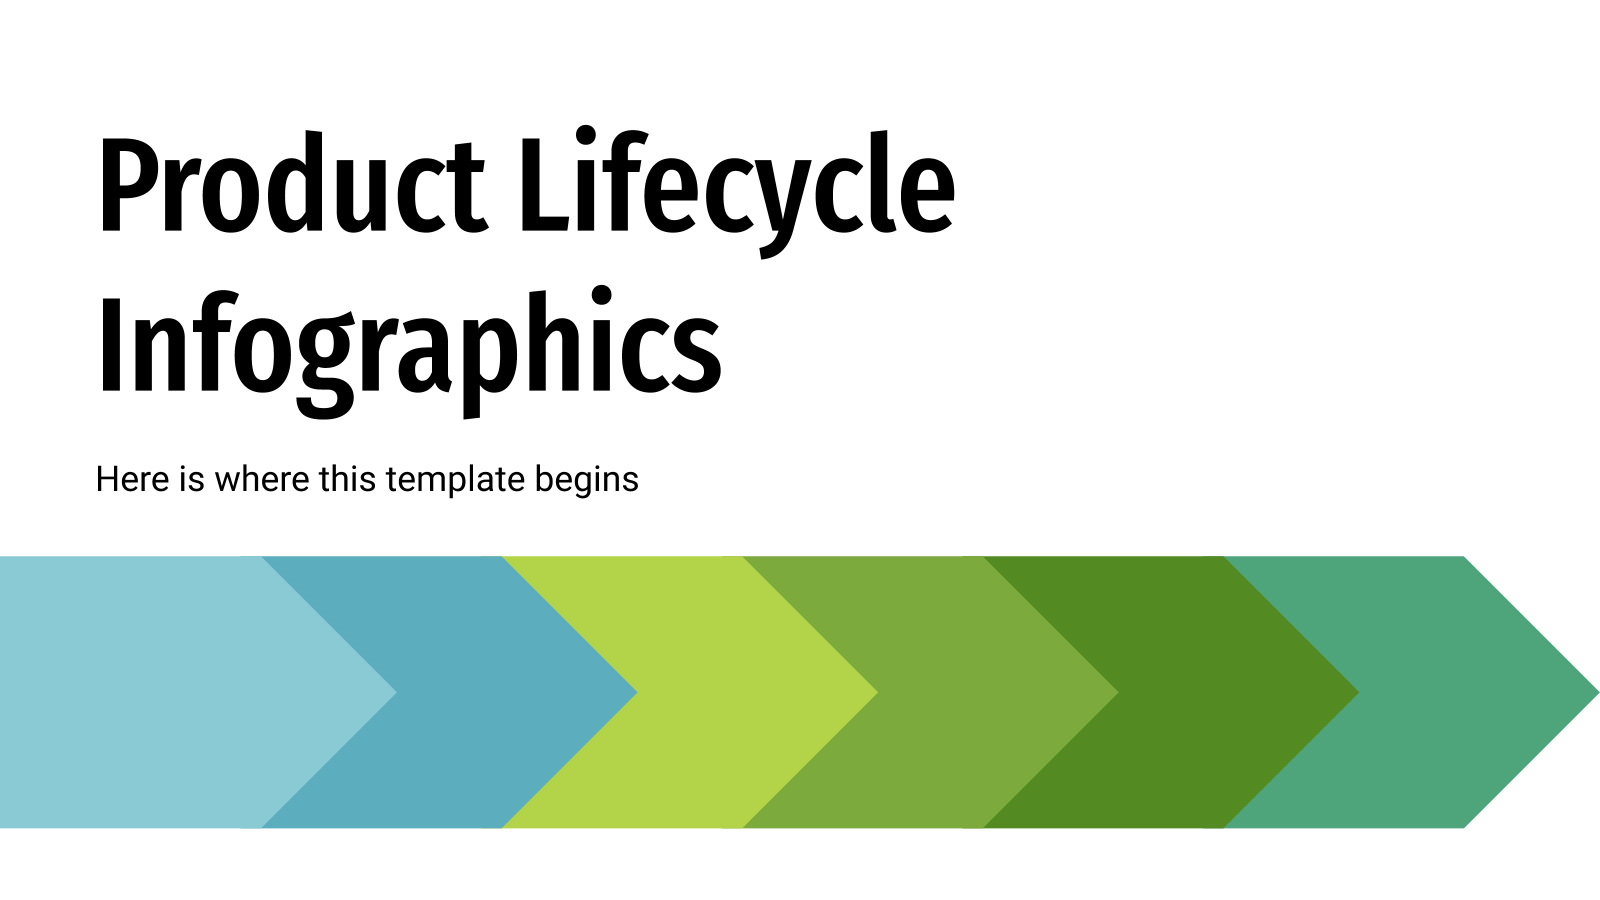 Product Lifecycle Infographics presentation template